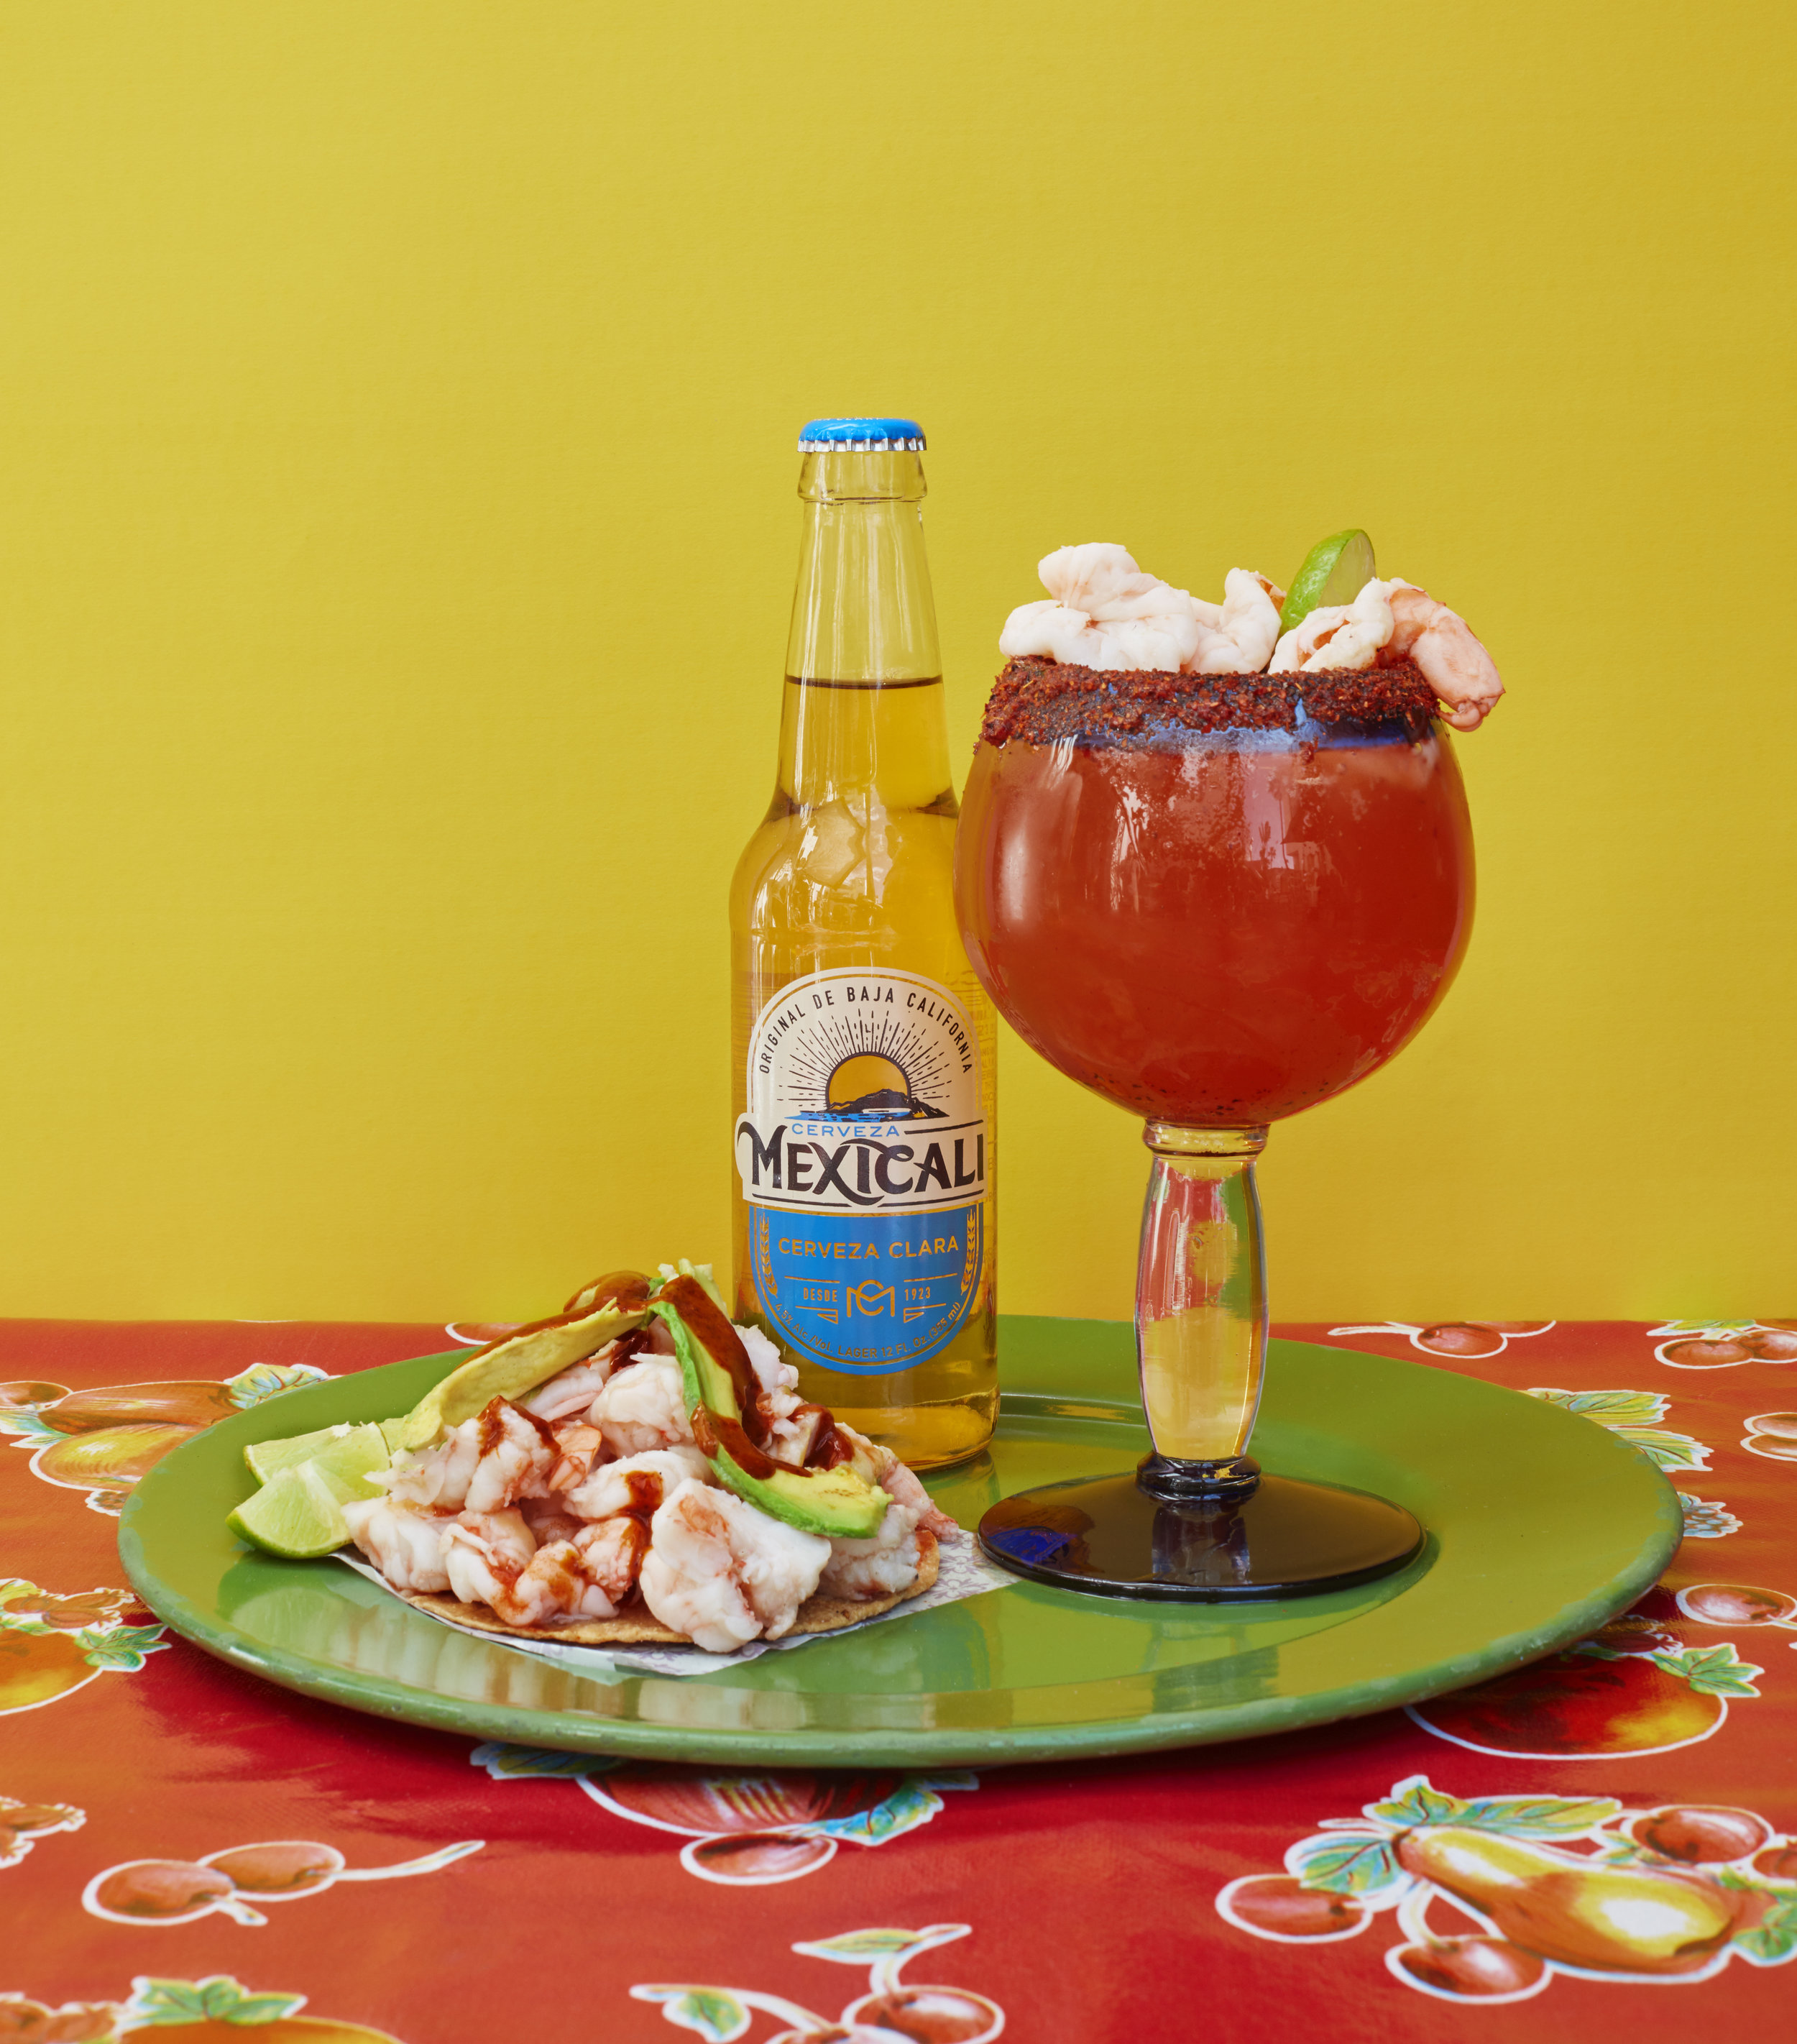 Baja Provisions - Brewed to be paired with the provisions of Baja, inspired by the bountiful local ingredients. Toast with Mexicali over ceviche and fish tacos, and add mariscos to your Baja-style Mexicali michelada.